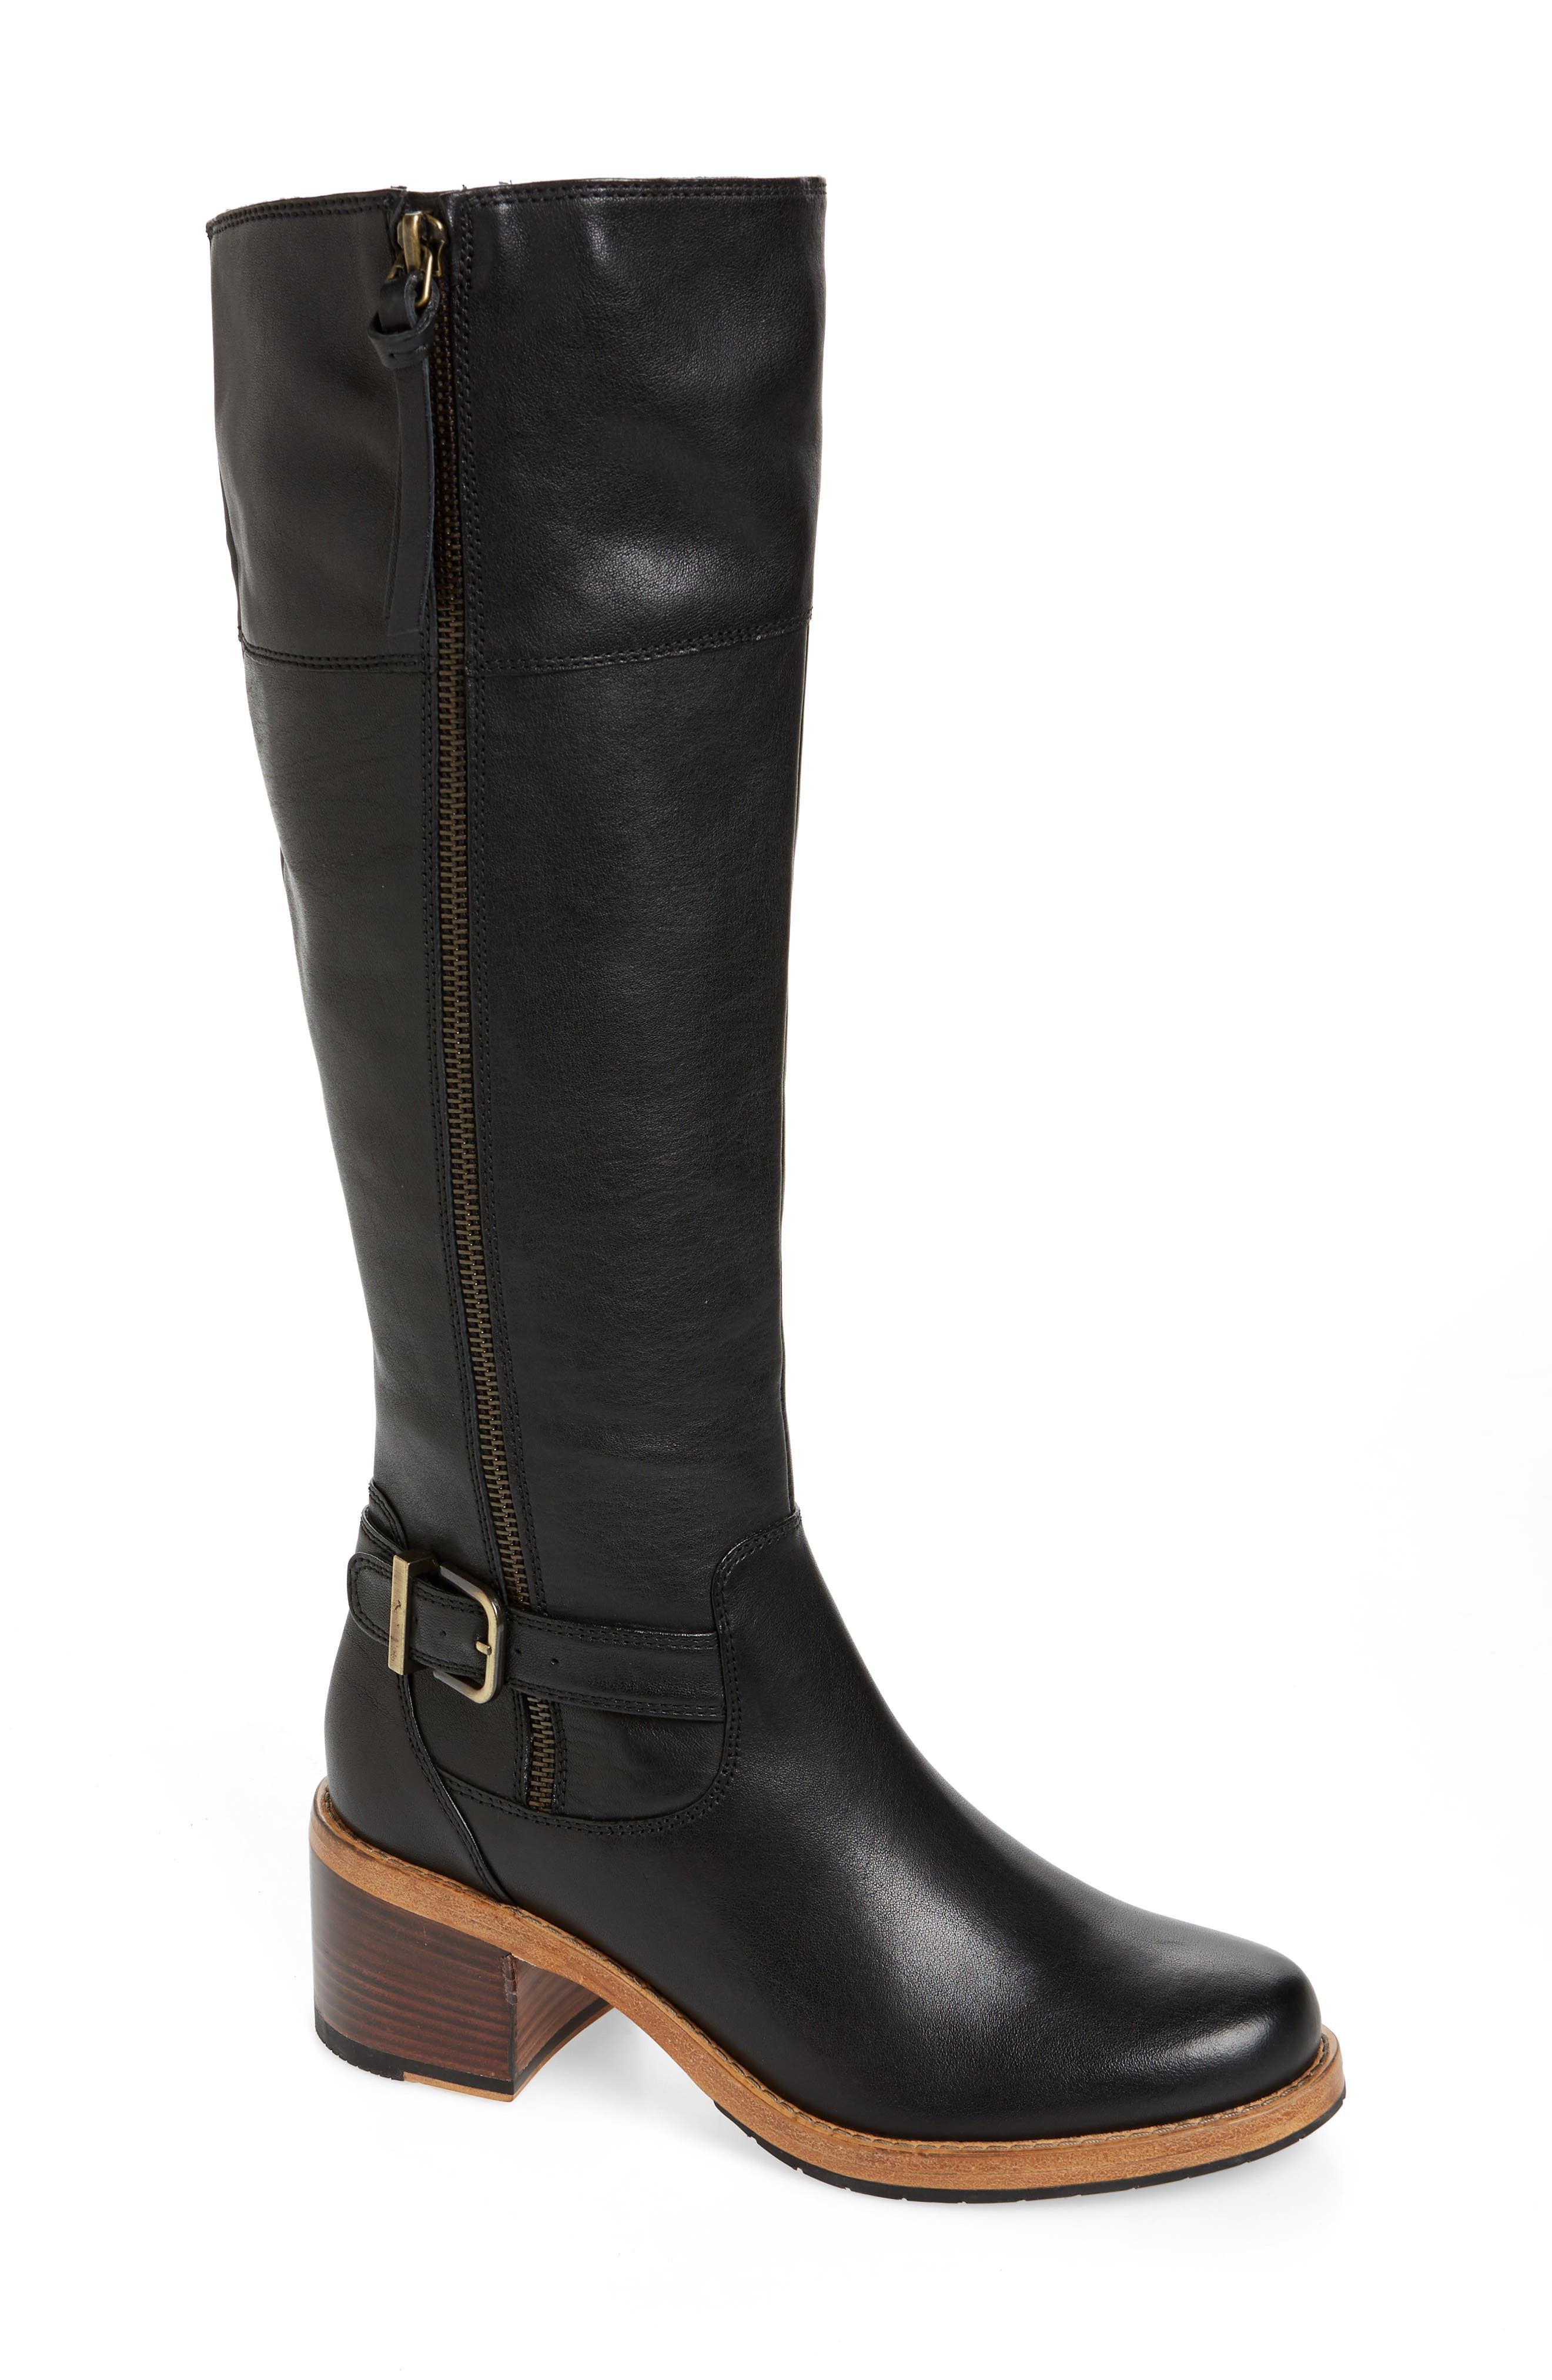 Clarkdale Sona Boot,                             Main thumbnail 1, color,                             BLACK LEATHER